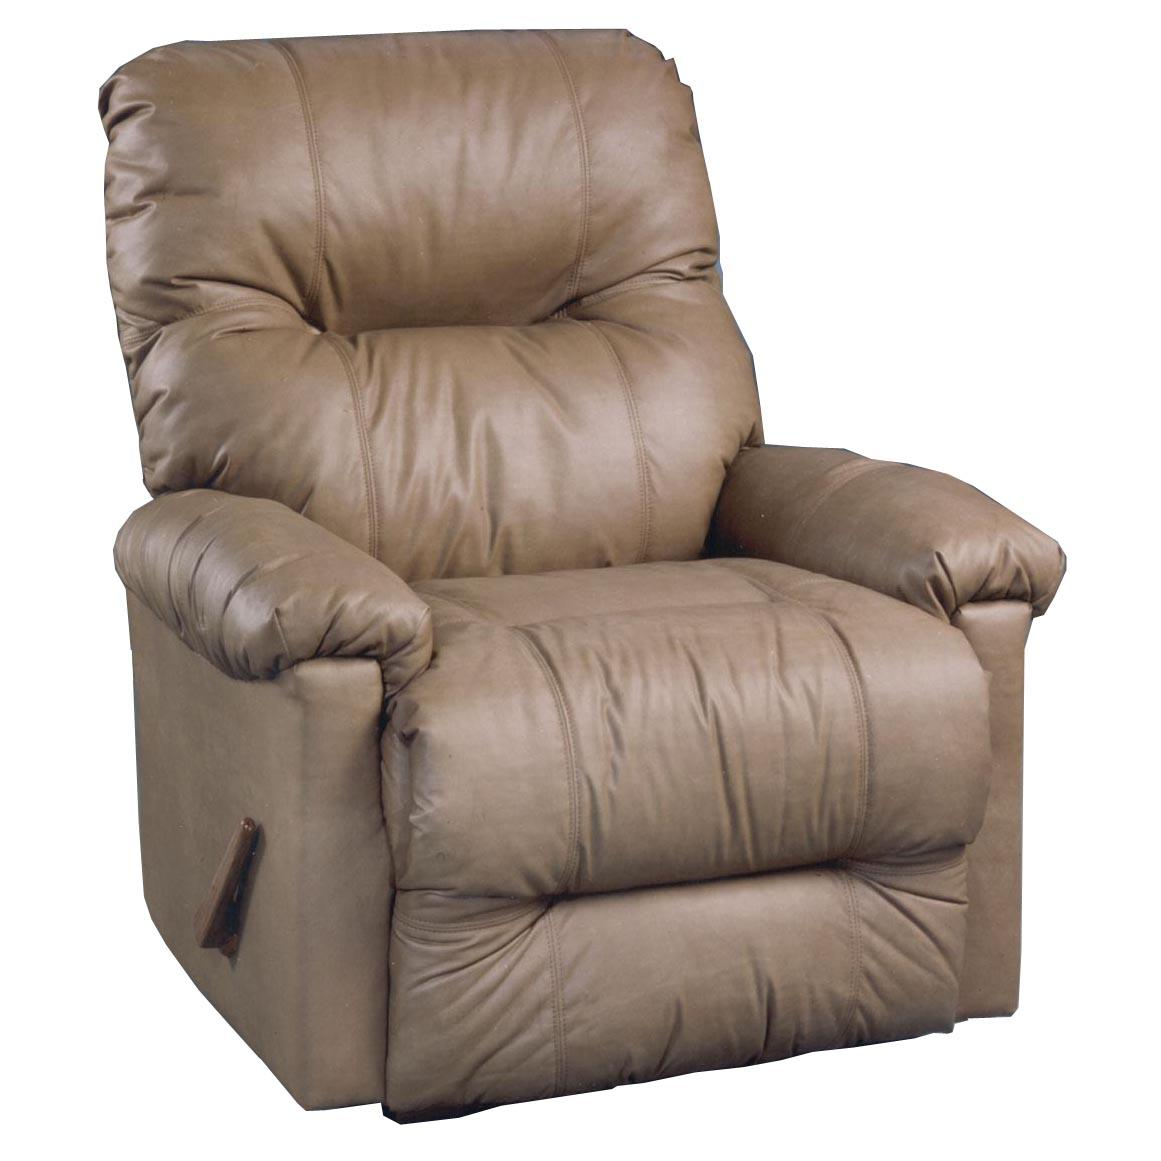 Best Furnitures: Best Home Furnishings Petite Recliners 9MW15-1 Wynette